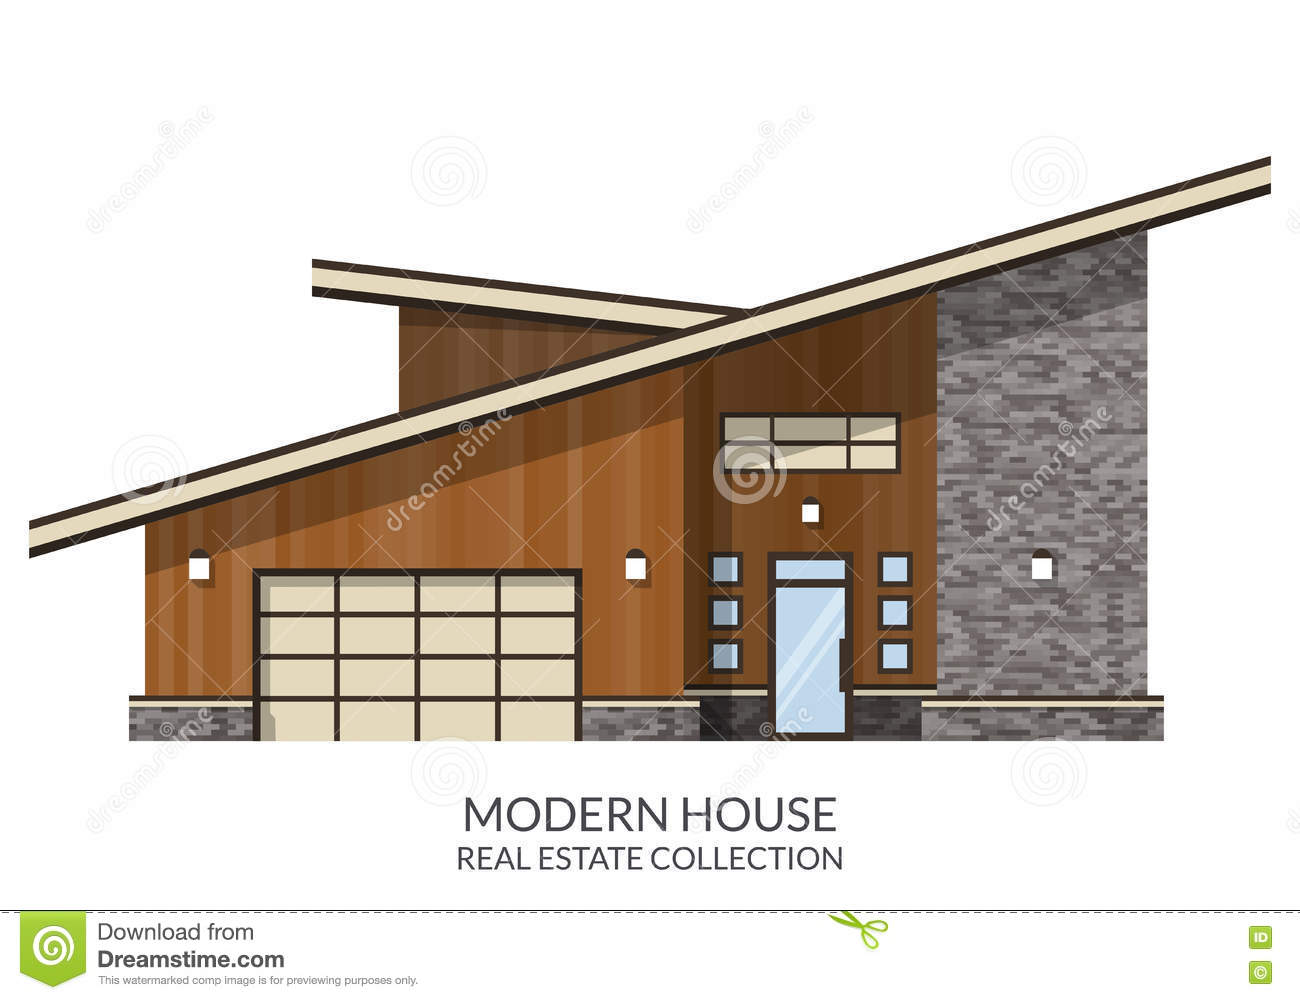 Modern country house, real estate sign in flat style.